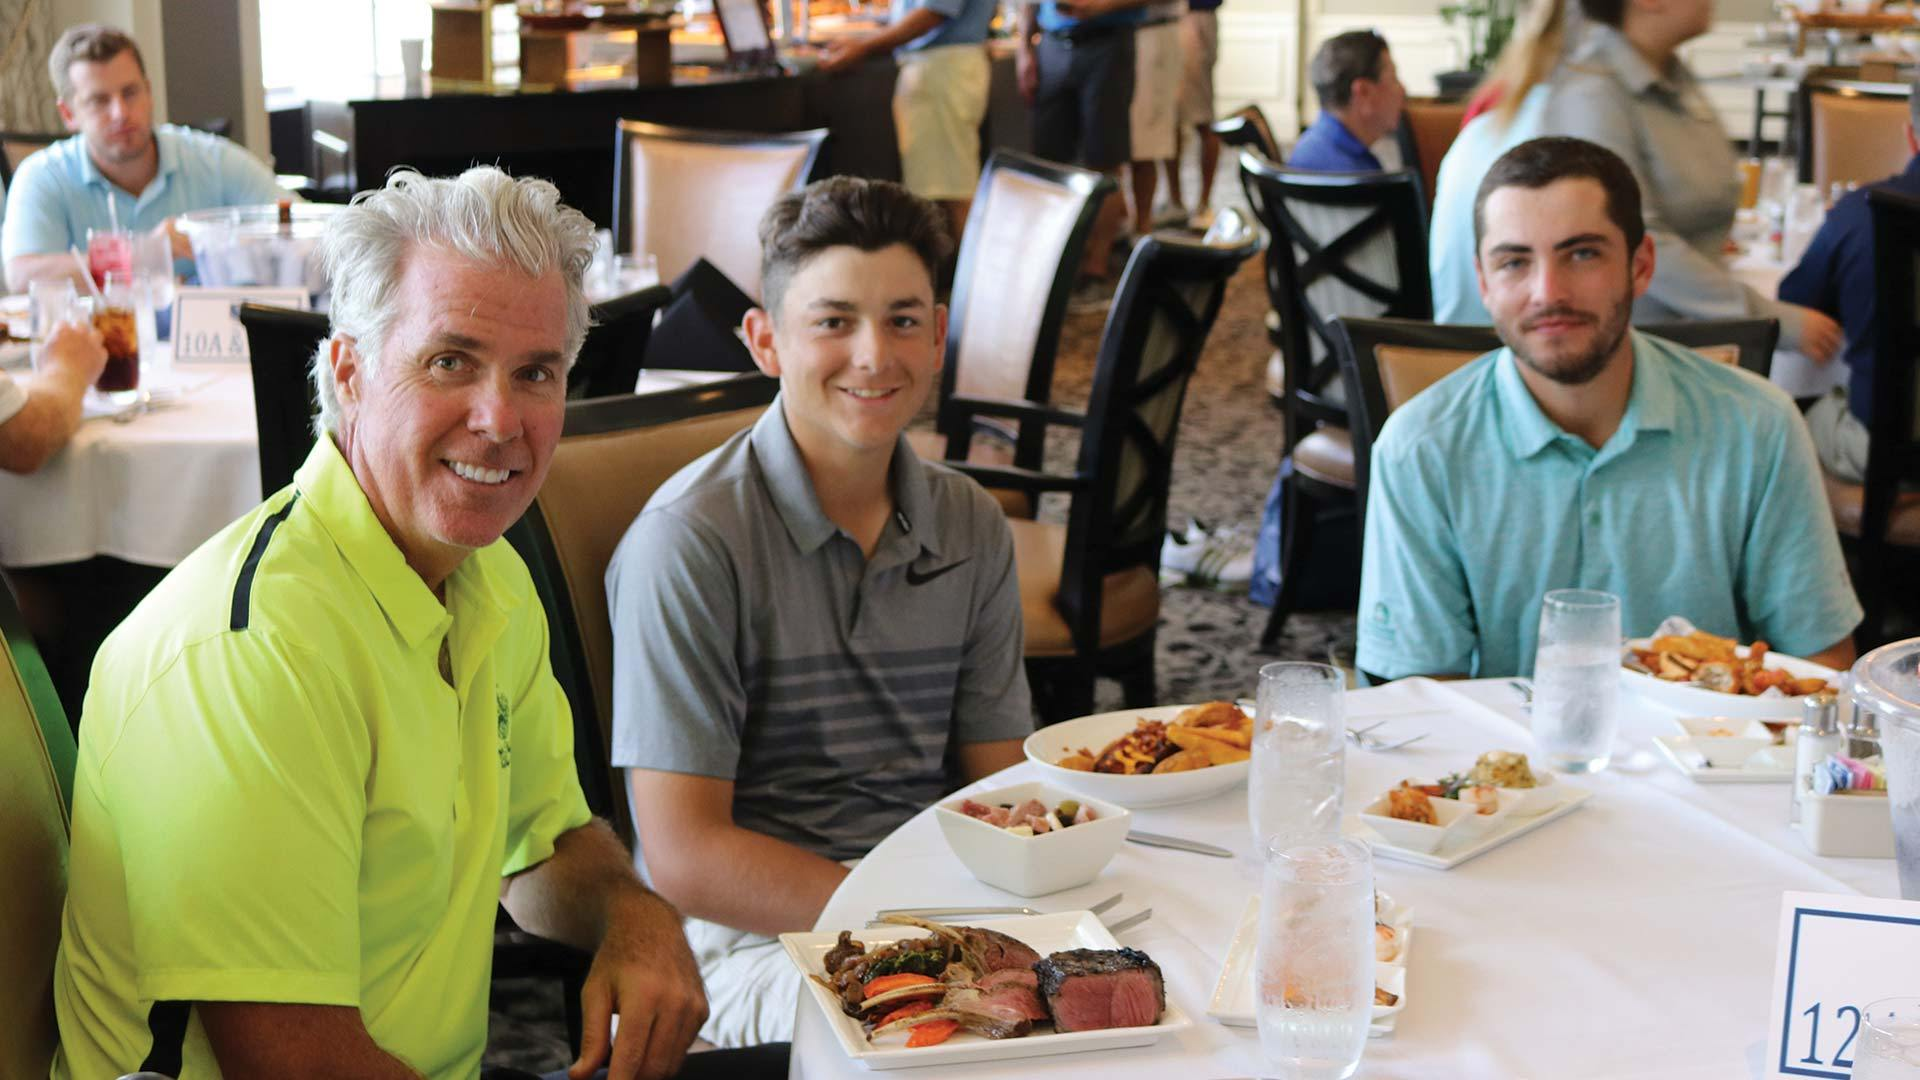 mizner-country-club-delray-beach-golf-images-21